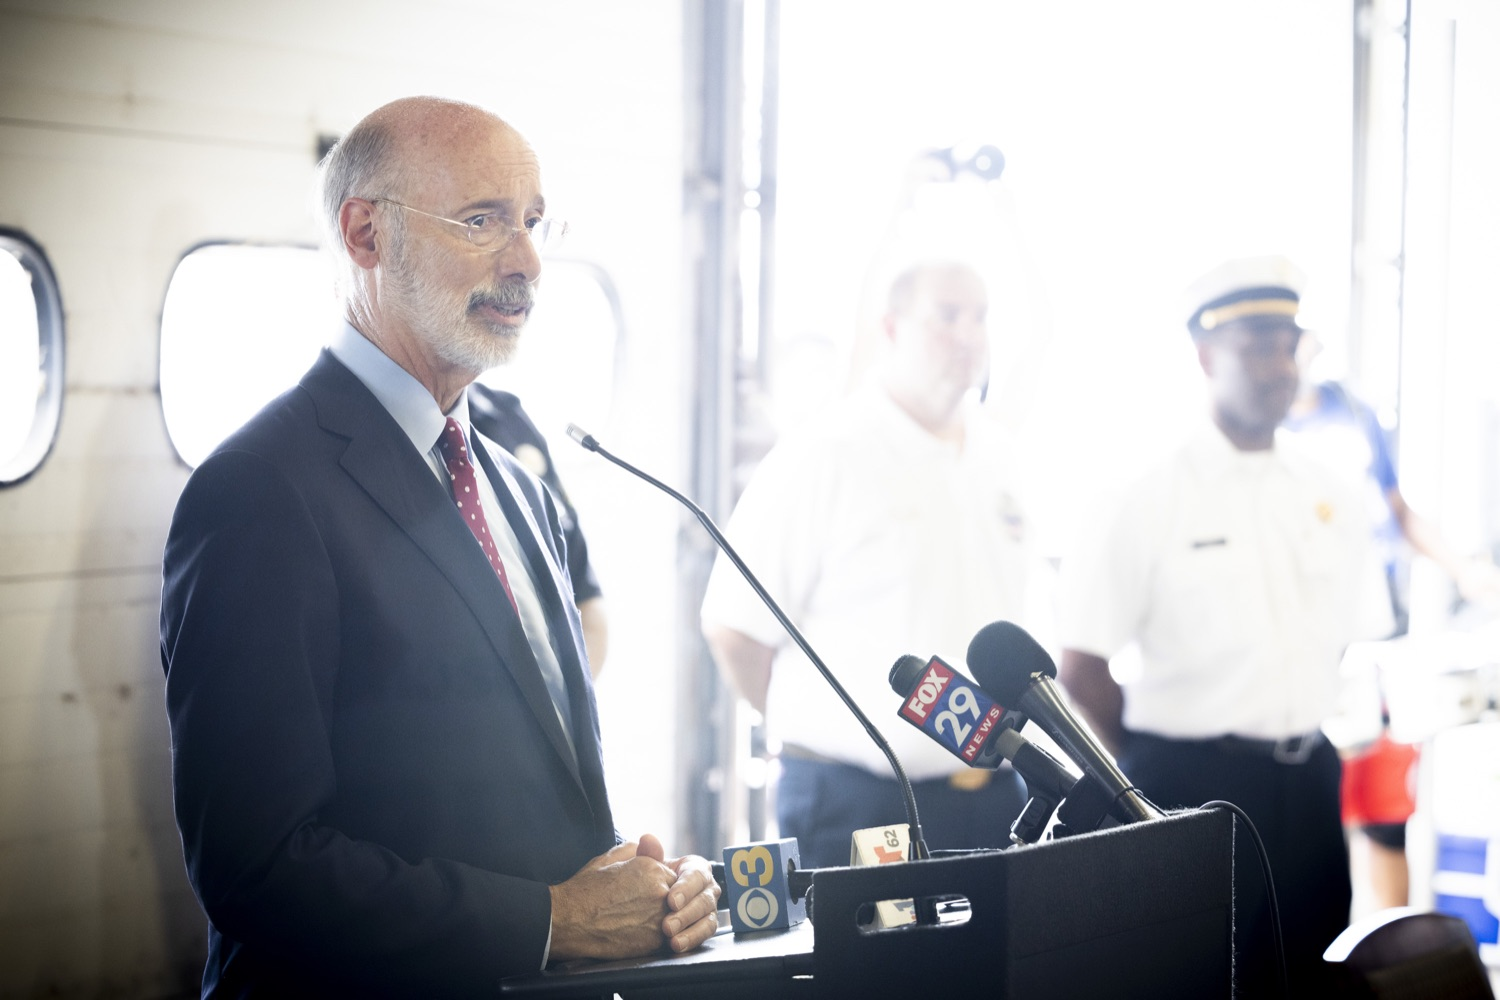 """<a href=""""https://filesource.wostreaming.net/commonwealthofpa/photo/18936_gov_taskforceone_dz_009.jpg"""" target=""""_blank"""">⇣Download Photo<br></a>Pennsylvania Governor Tom Wolf speaking with the press.  Governor Tom Wolf thanked members of Pennsylvania-Task Force 1 (PA- TF1), who returned today to Philadelphia after spending two weeks assisting with search and rescue efforts at the site of the recent deadly building collapse in Surfside, Florida.  Philadelphia, Pa.  July 16, 2021"""